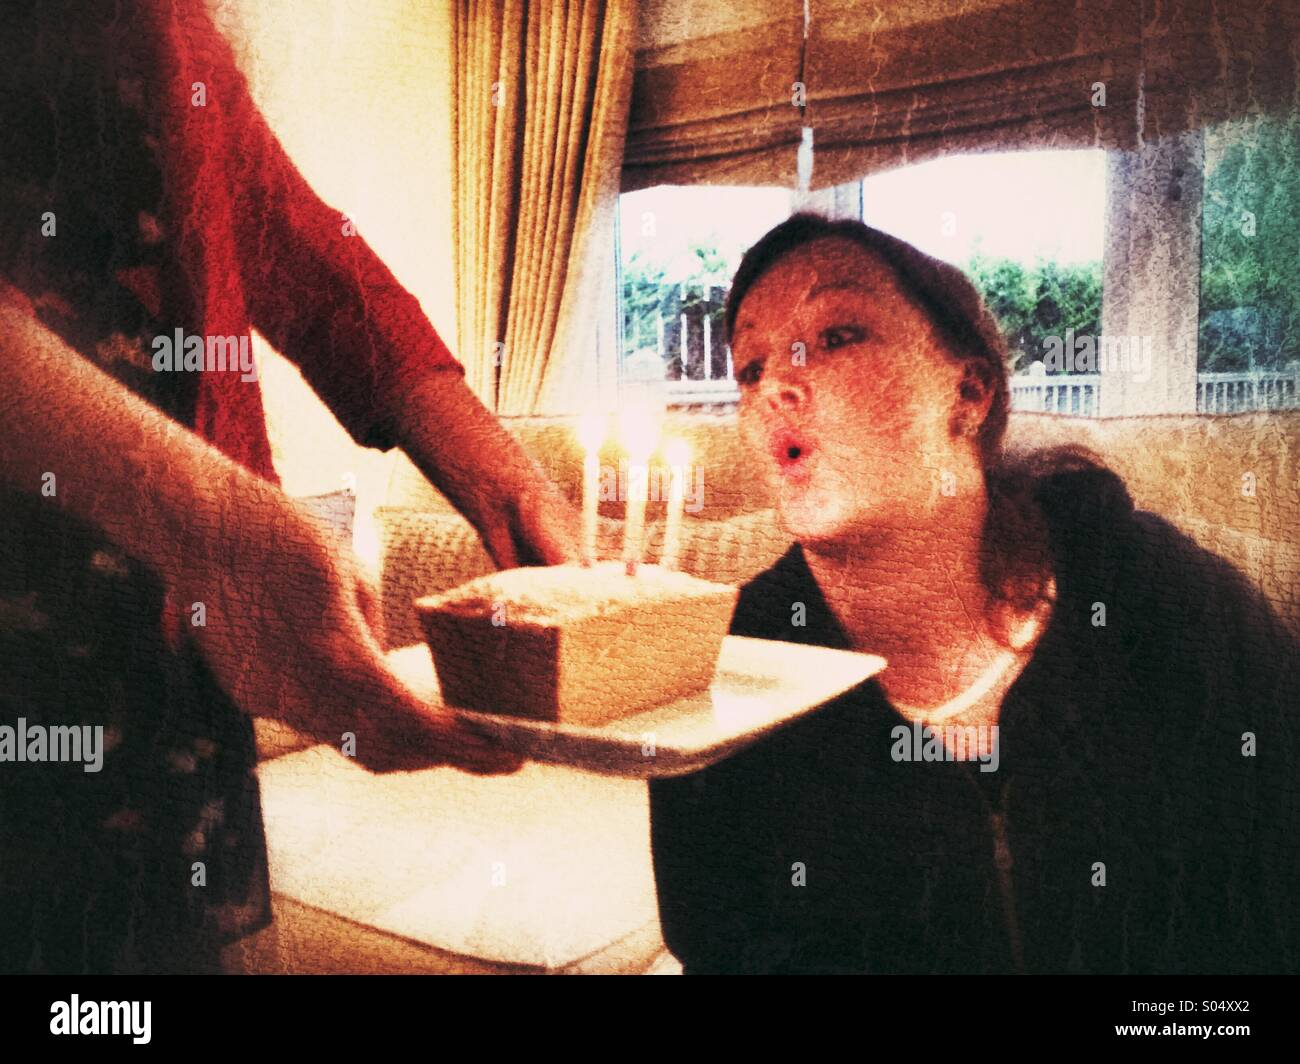 Woman blowing out candles on a small birthday cake - Stock Image